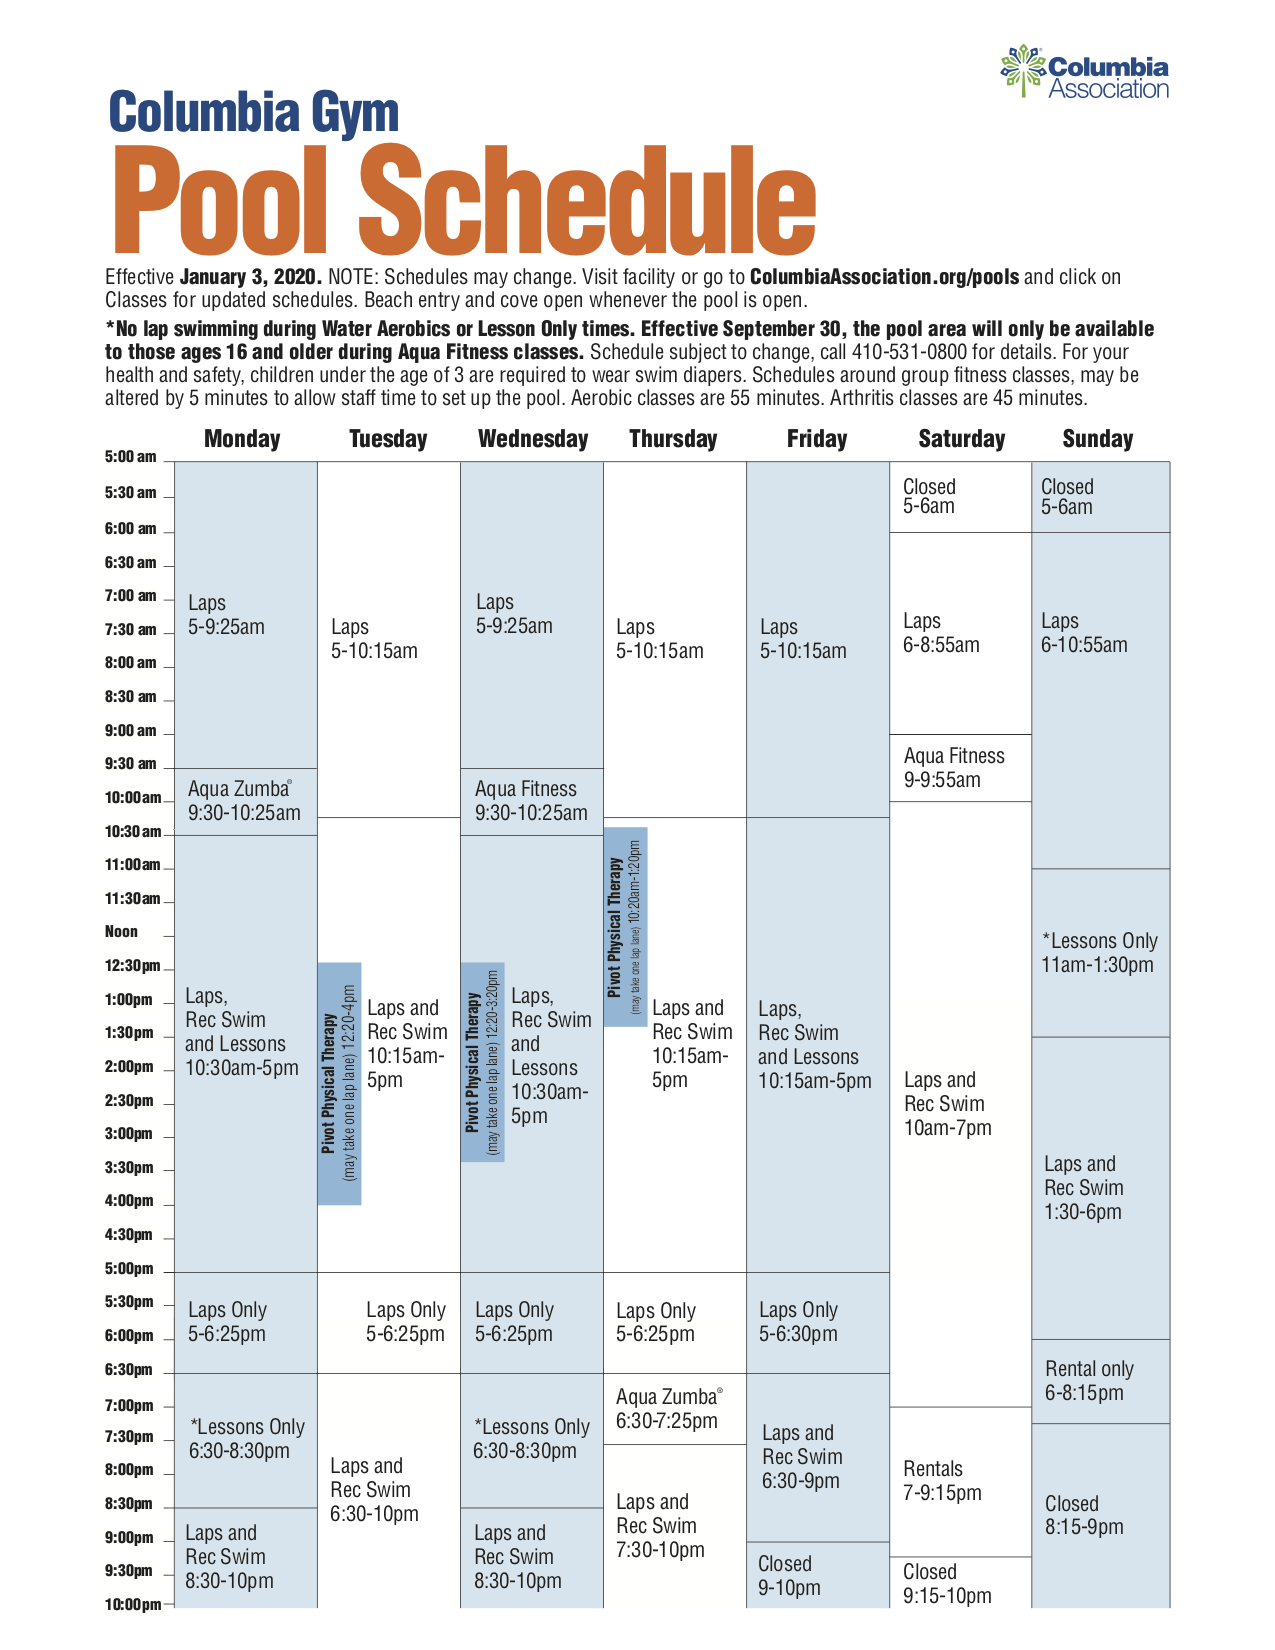 Columbia Gym January pools schedule